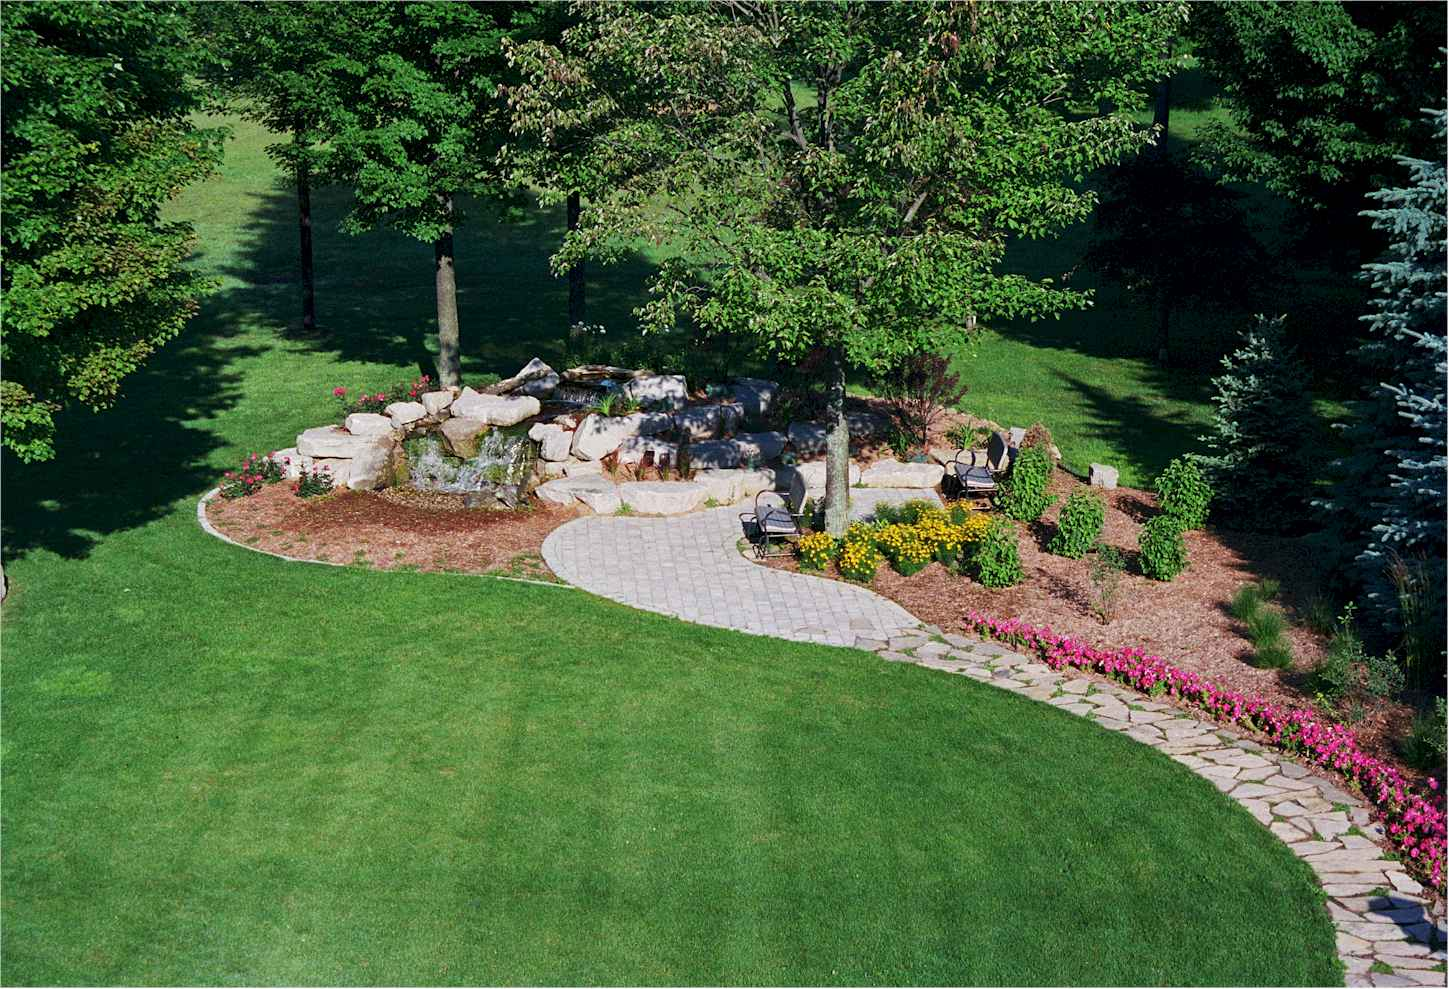 5 landscaping ideas to wow the neighbors for Home backyard landscaping ideas